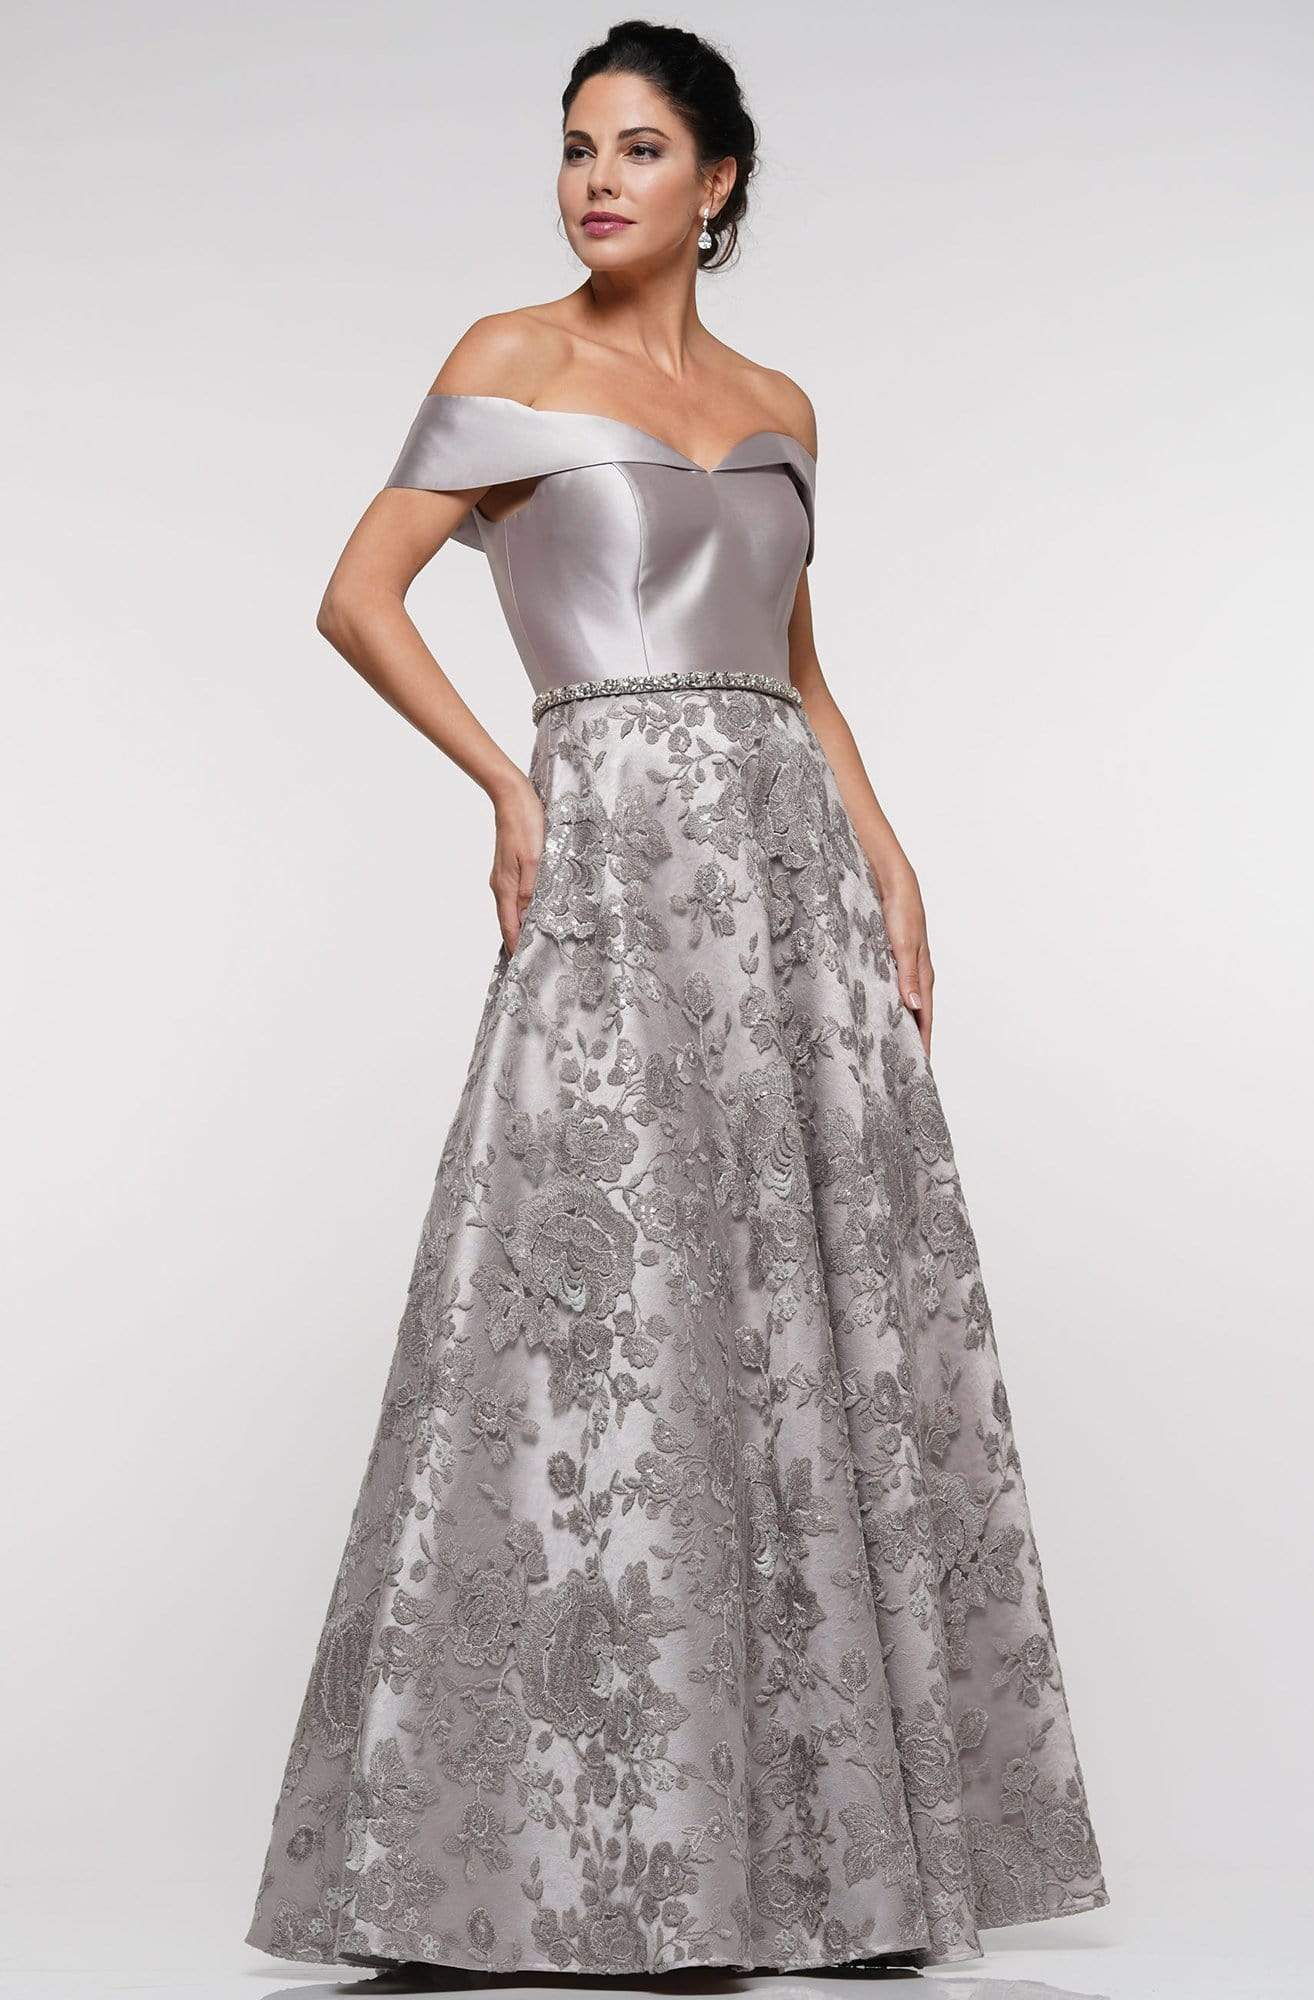 Marsoni By Colors - MV1013 Off-Shoulder Mikado Sequin Beaded Lace A-line Gown In Silver and Gray